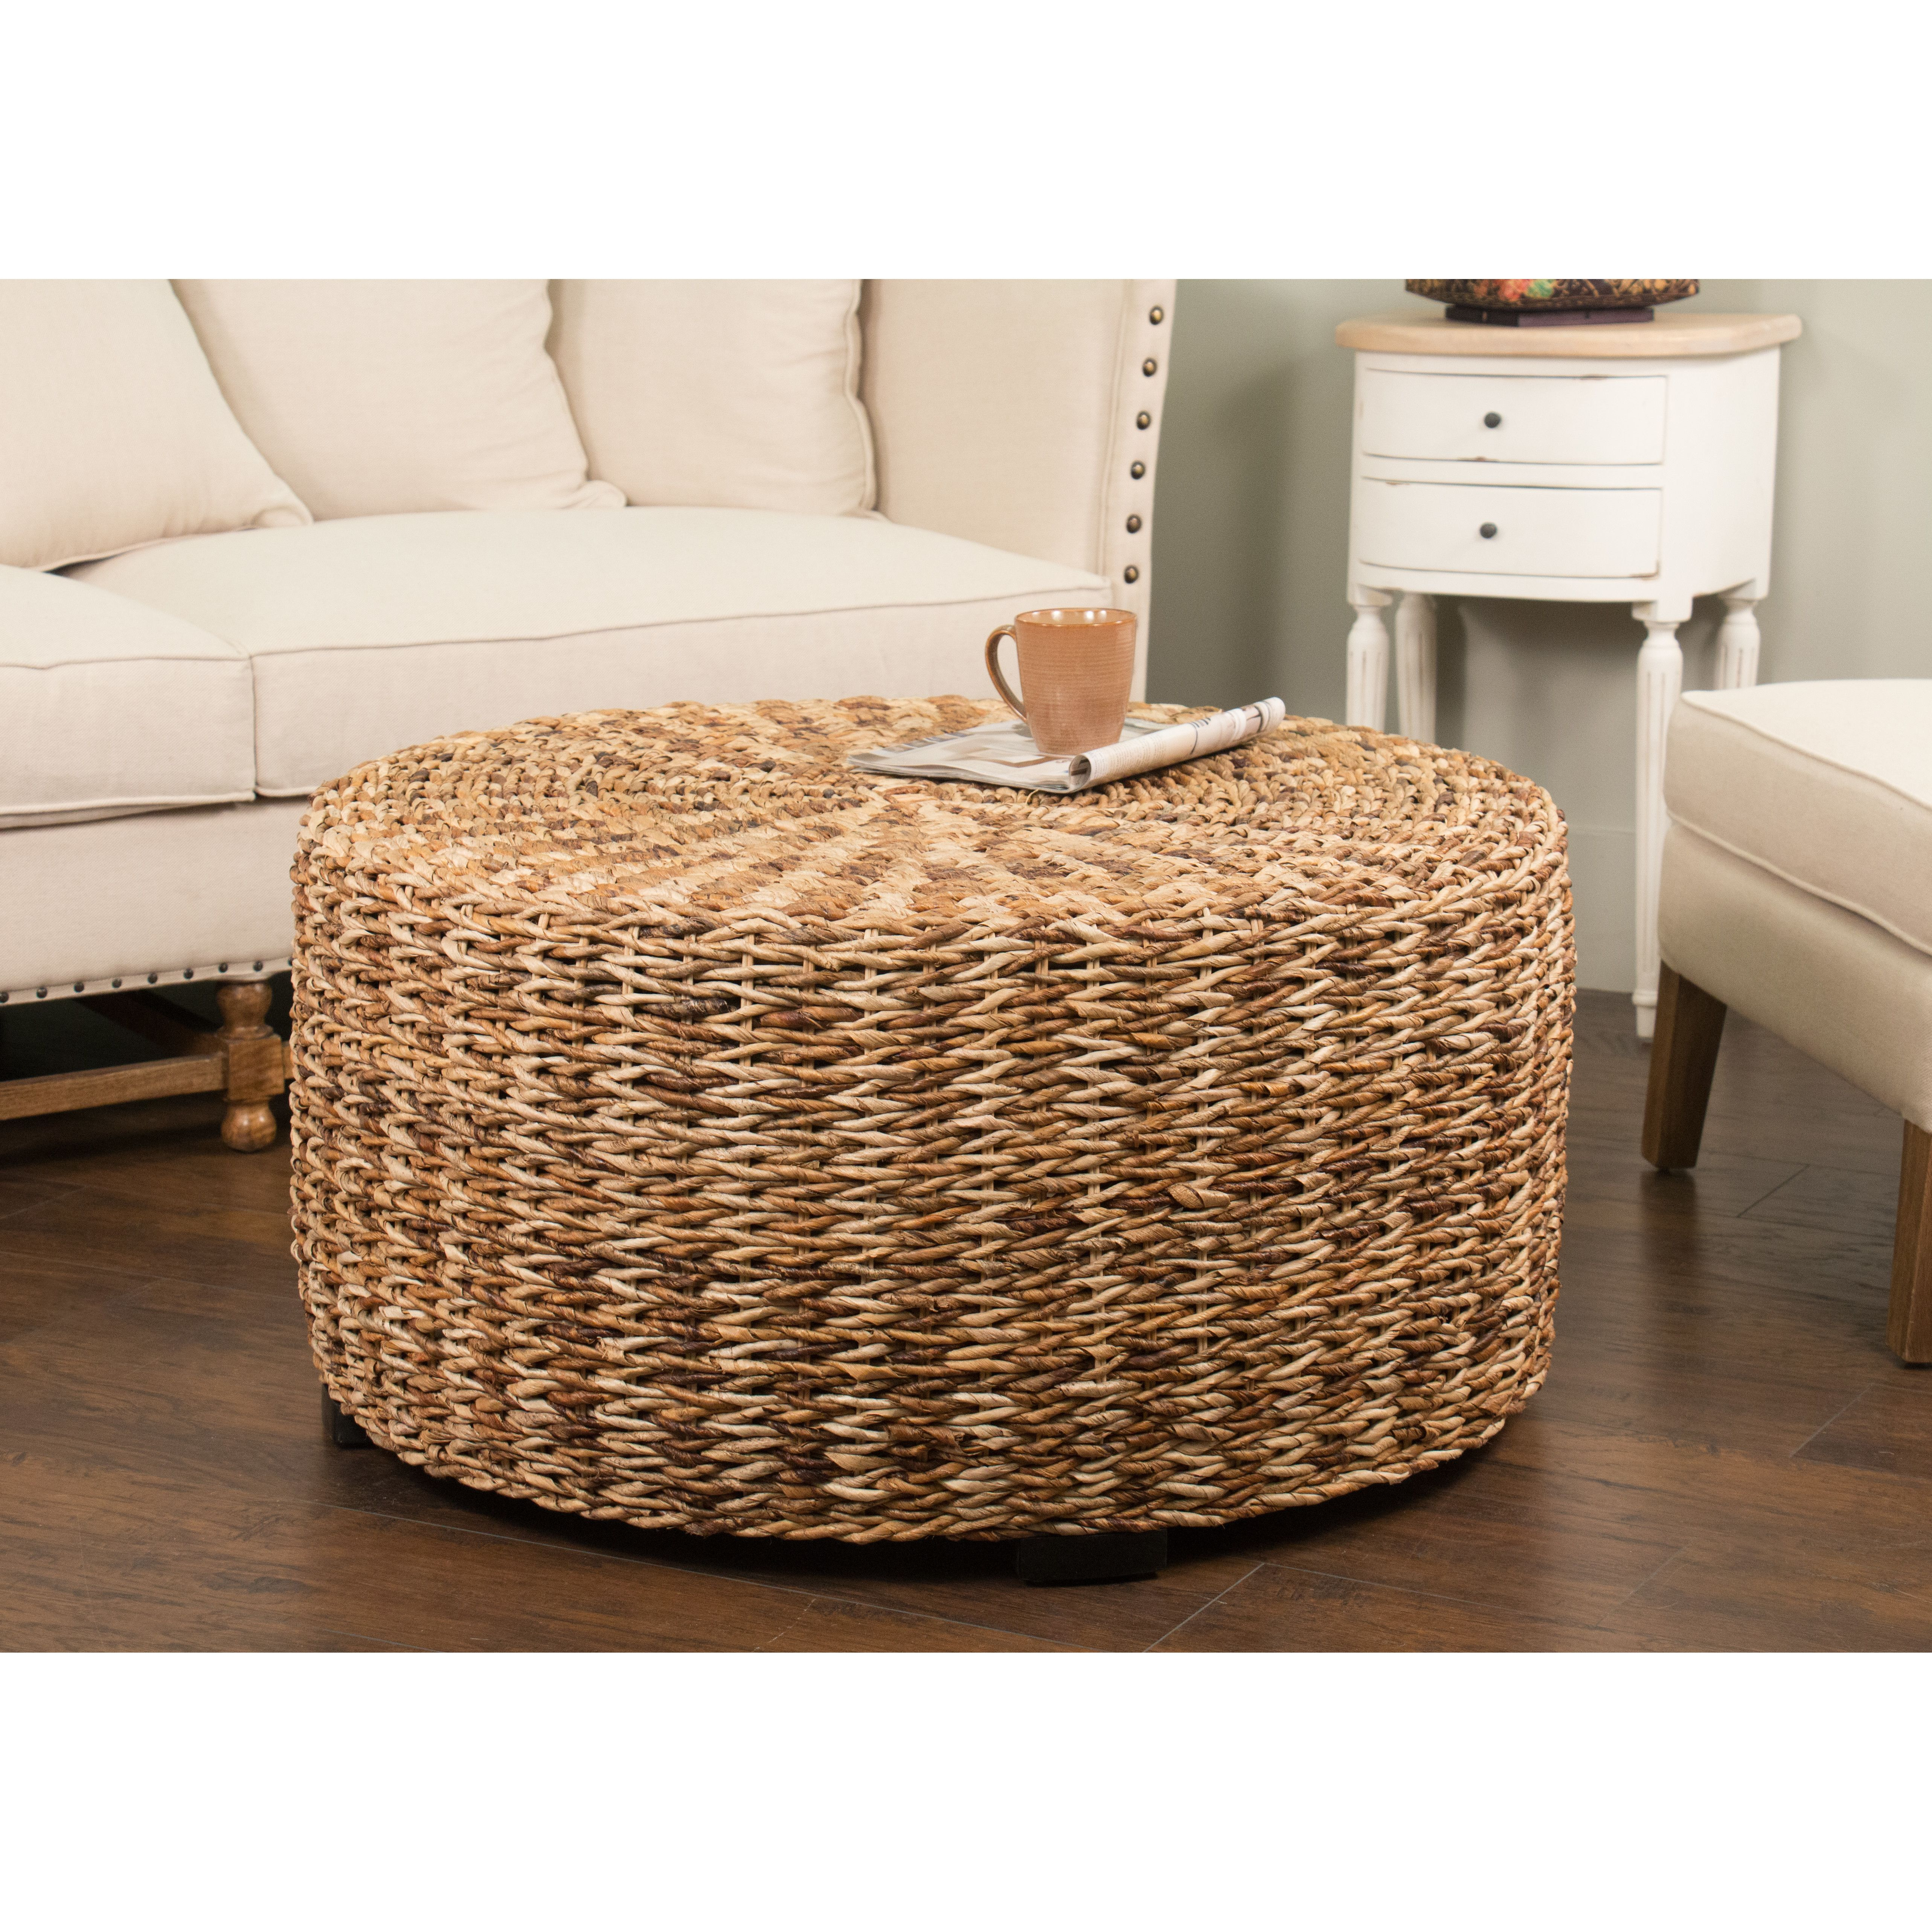 Beachcrest Home Placid Lakes Coffee Table Coffee Table Wicker Coffee Table Traditional Coffee Table [ 5131 x 5131 Pixel ]